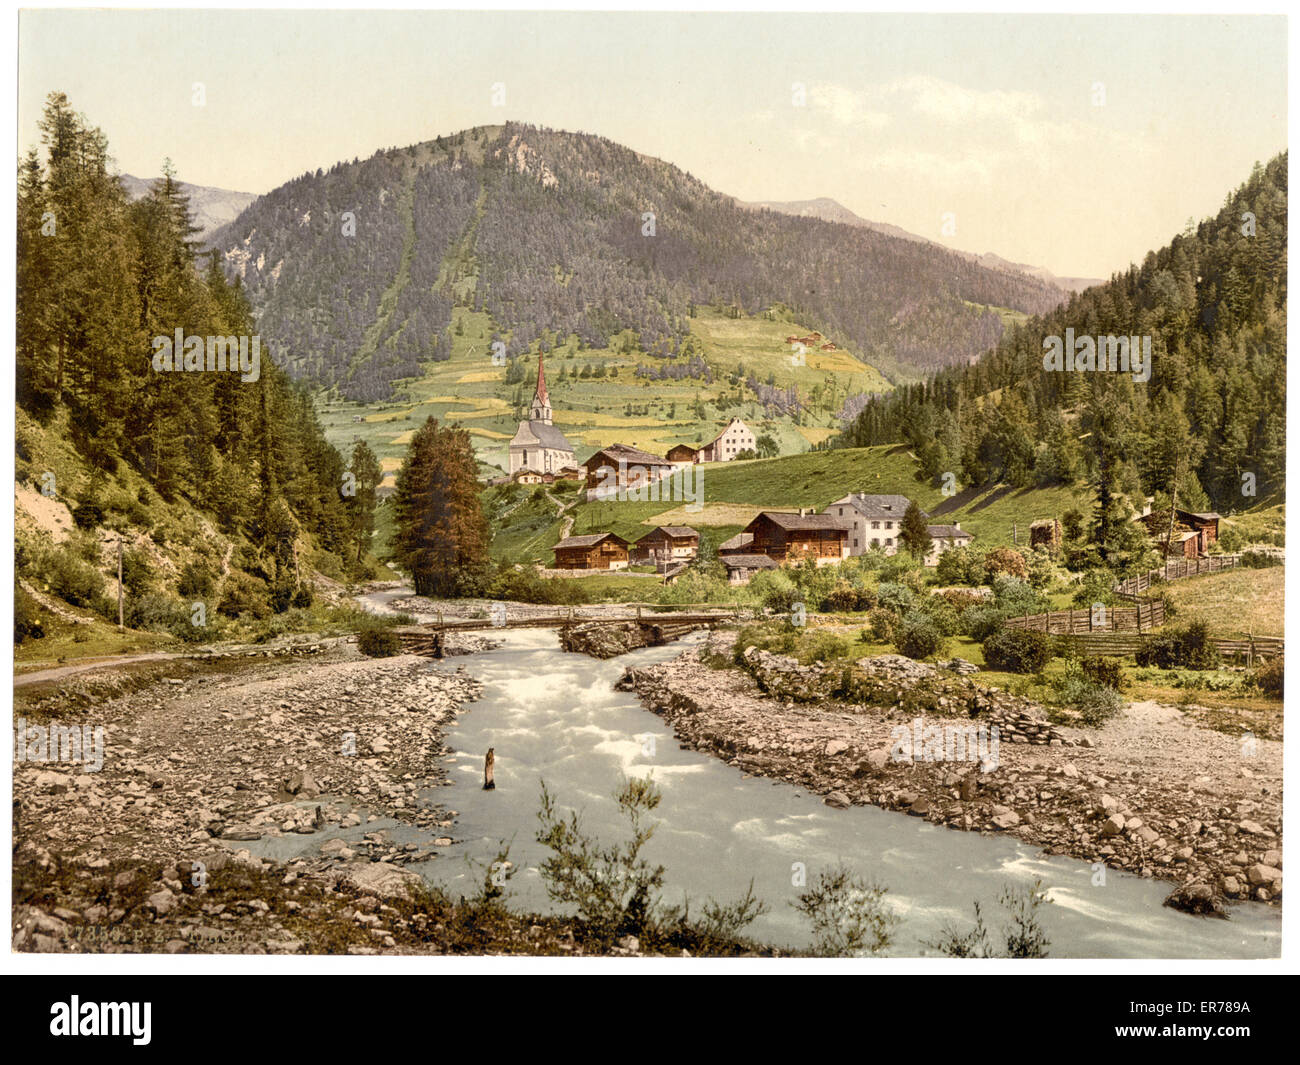 Kals, Tyrol, Austro-Hungary. Date between ca. 1890 and ca. 1900. - Stock Image